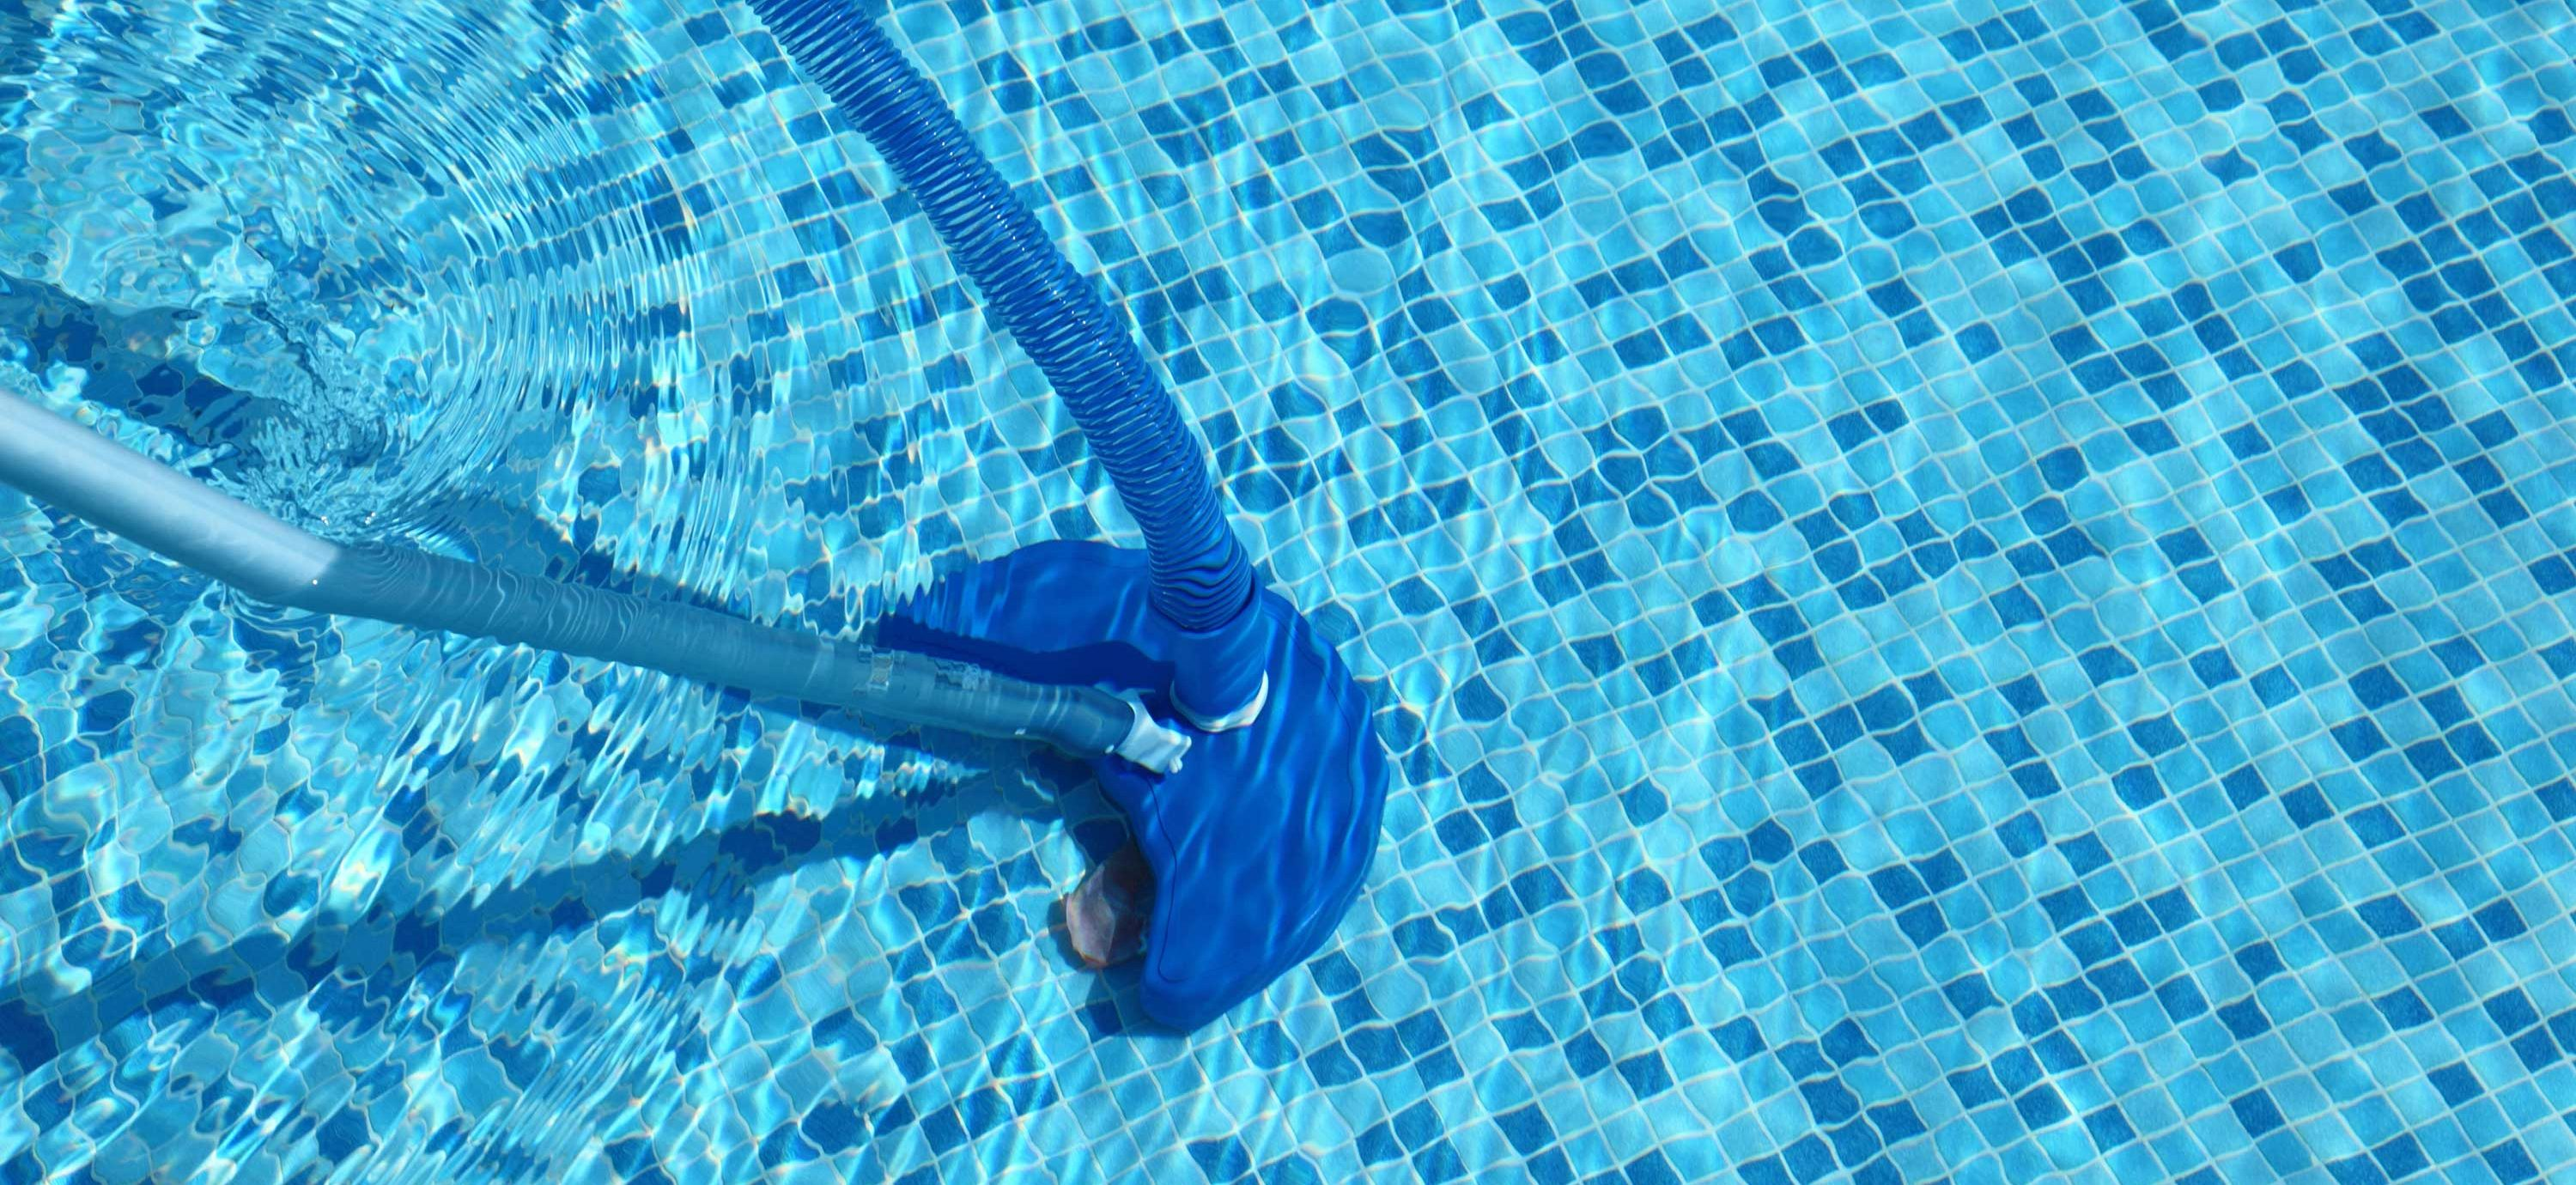 Pool Cleaner Skimming Bottom Of